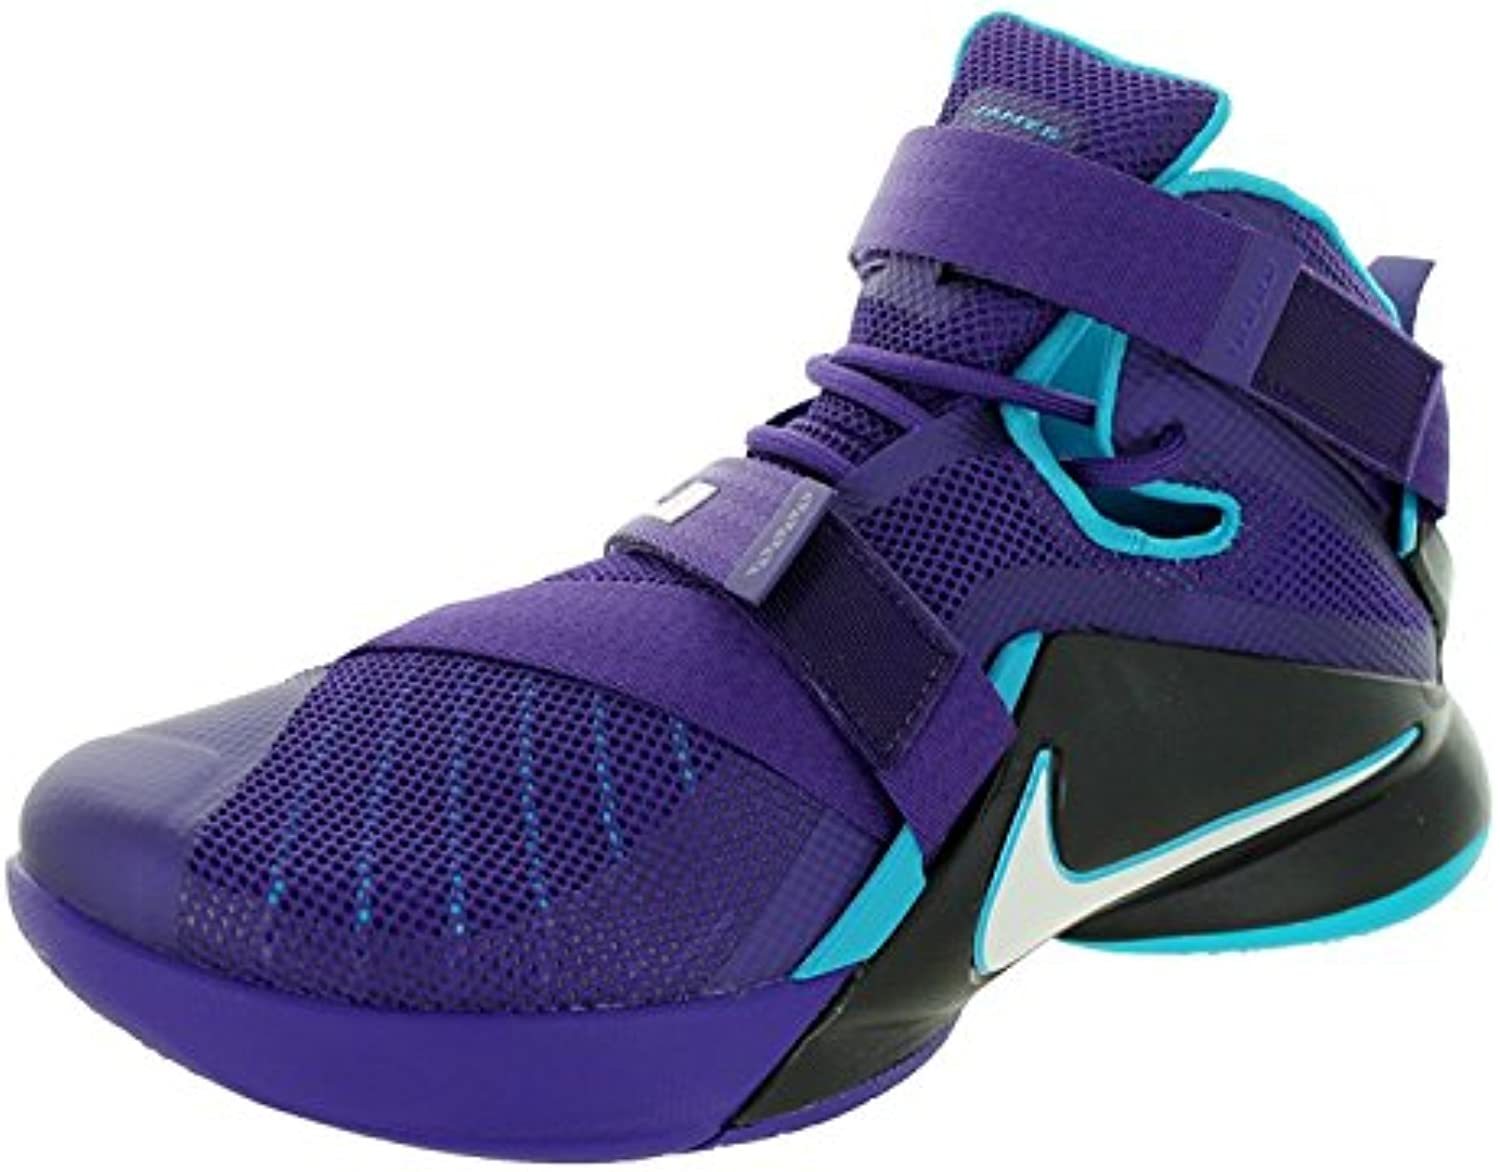 Nike Men's Lebron Soldier IX Basketball Shoe  Court Purple/White/Blk/BL Lgn  45.5 D(M) EU/10.5 D(M) UK